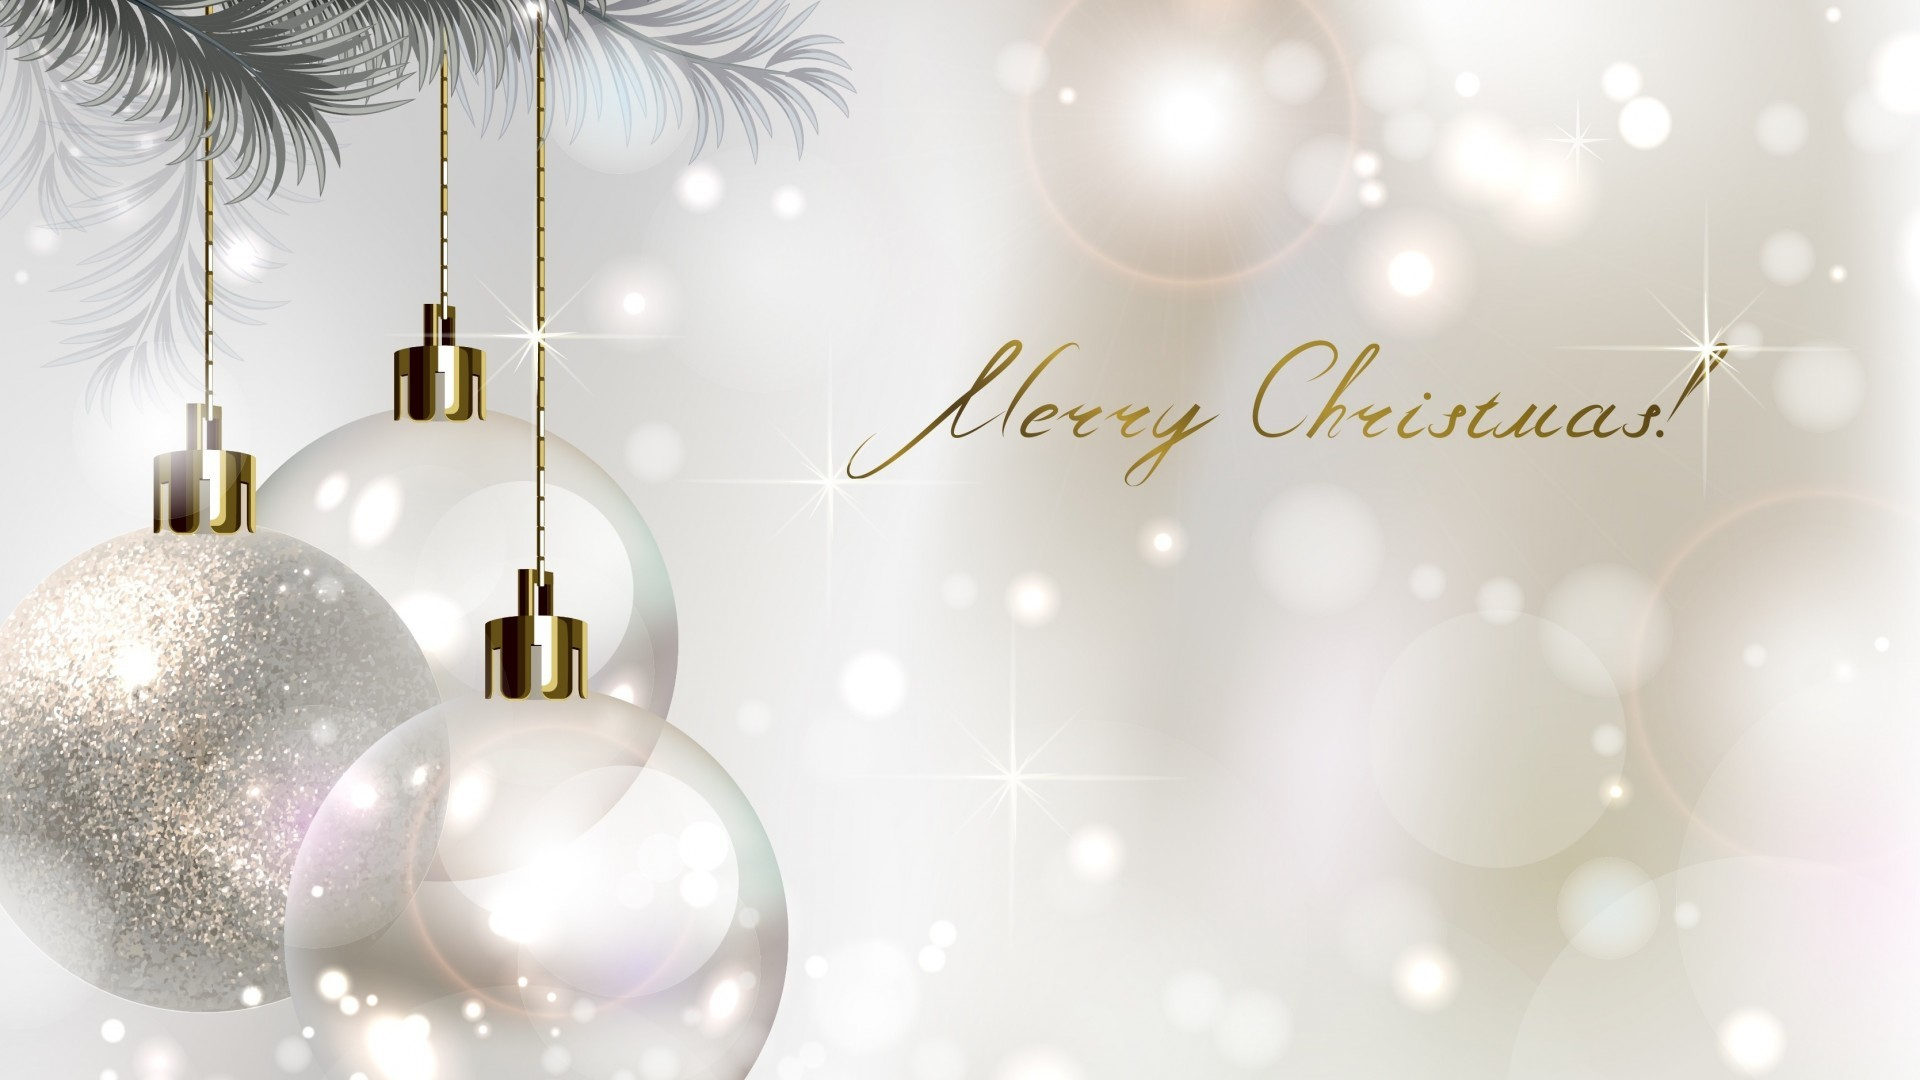 1920x1080 merry-christmas-celebrations-wallpaper